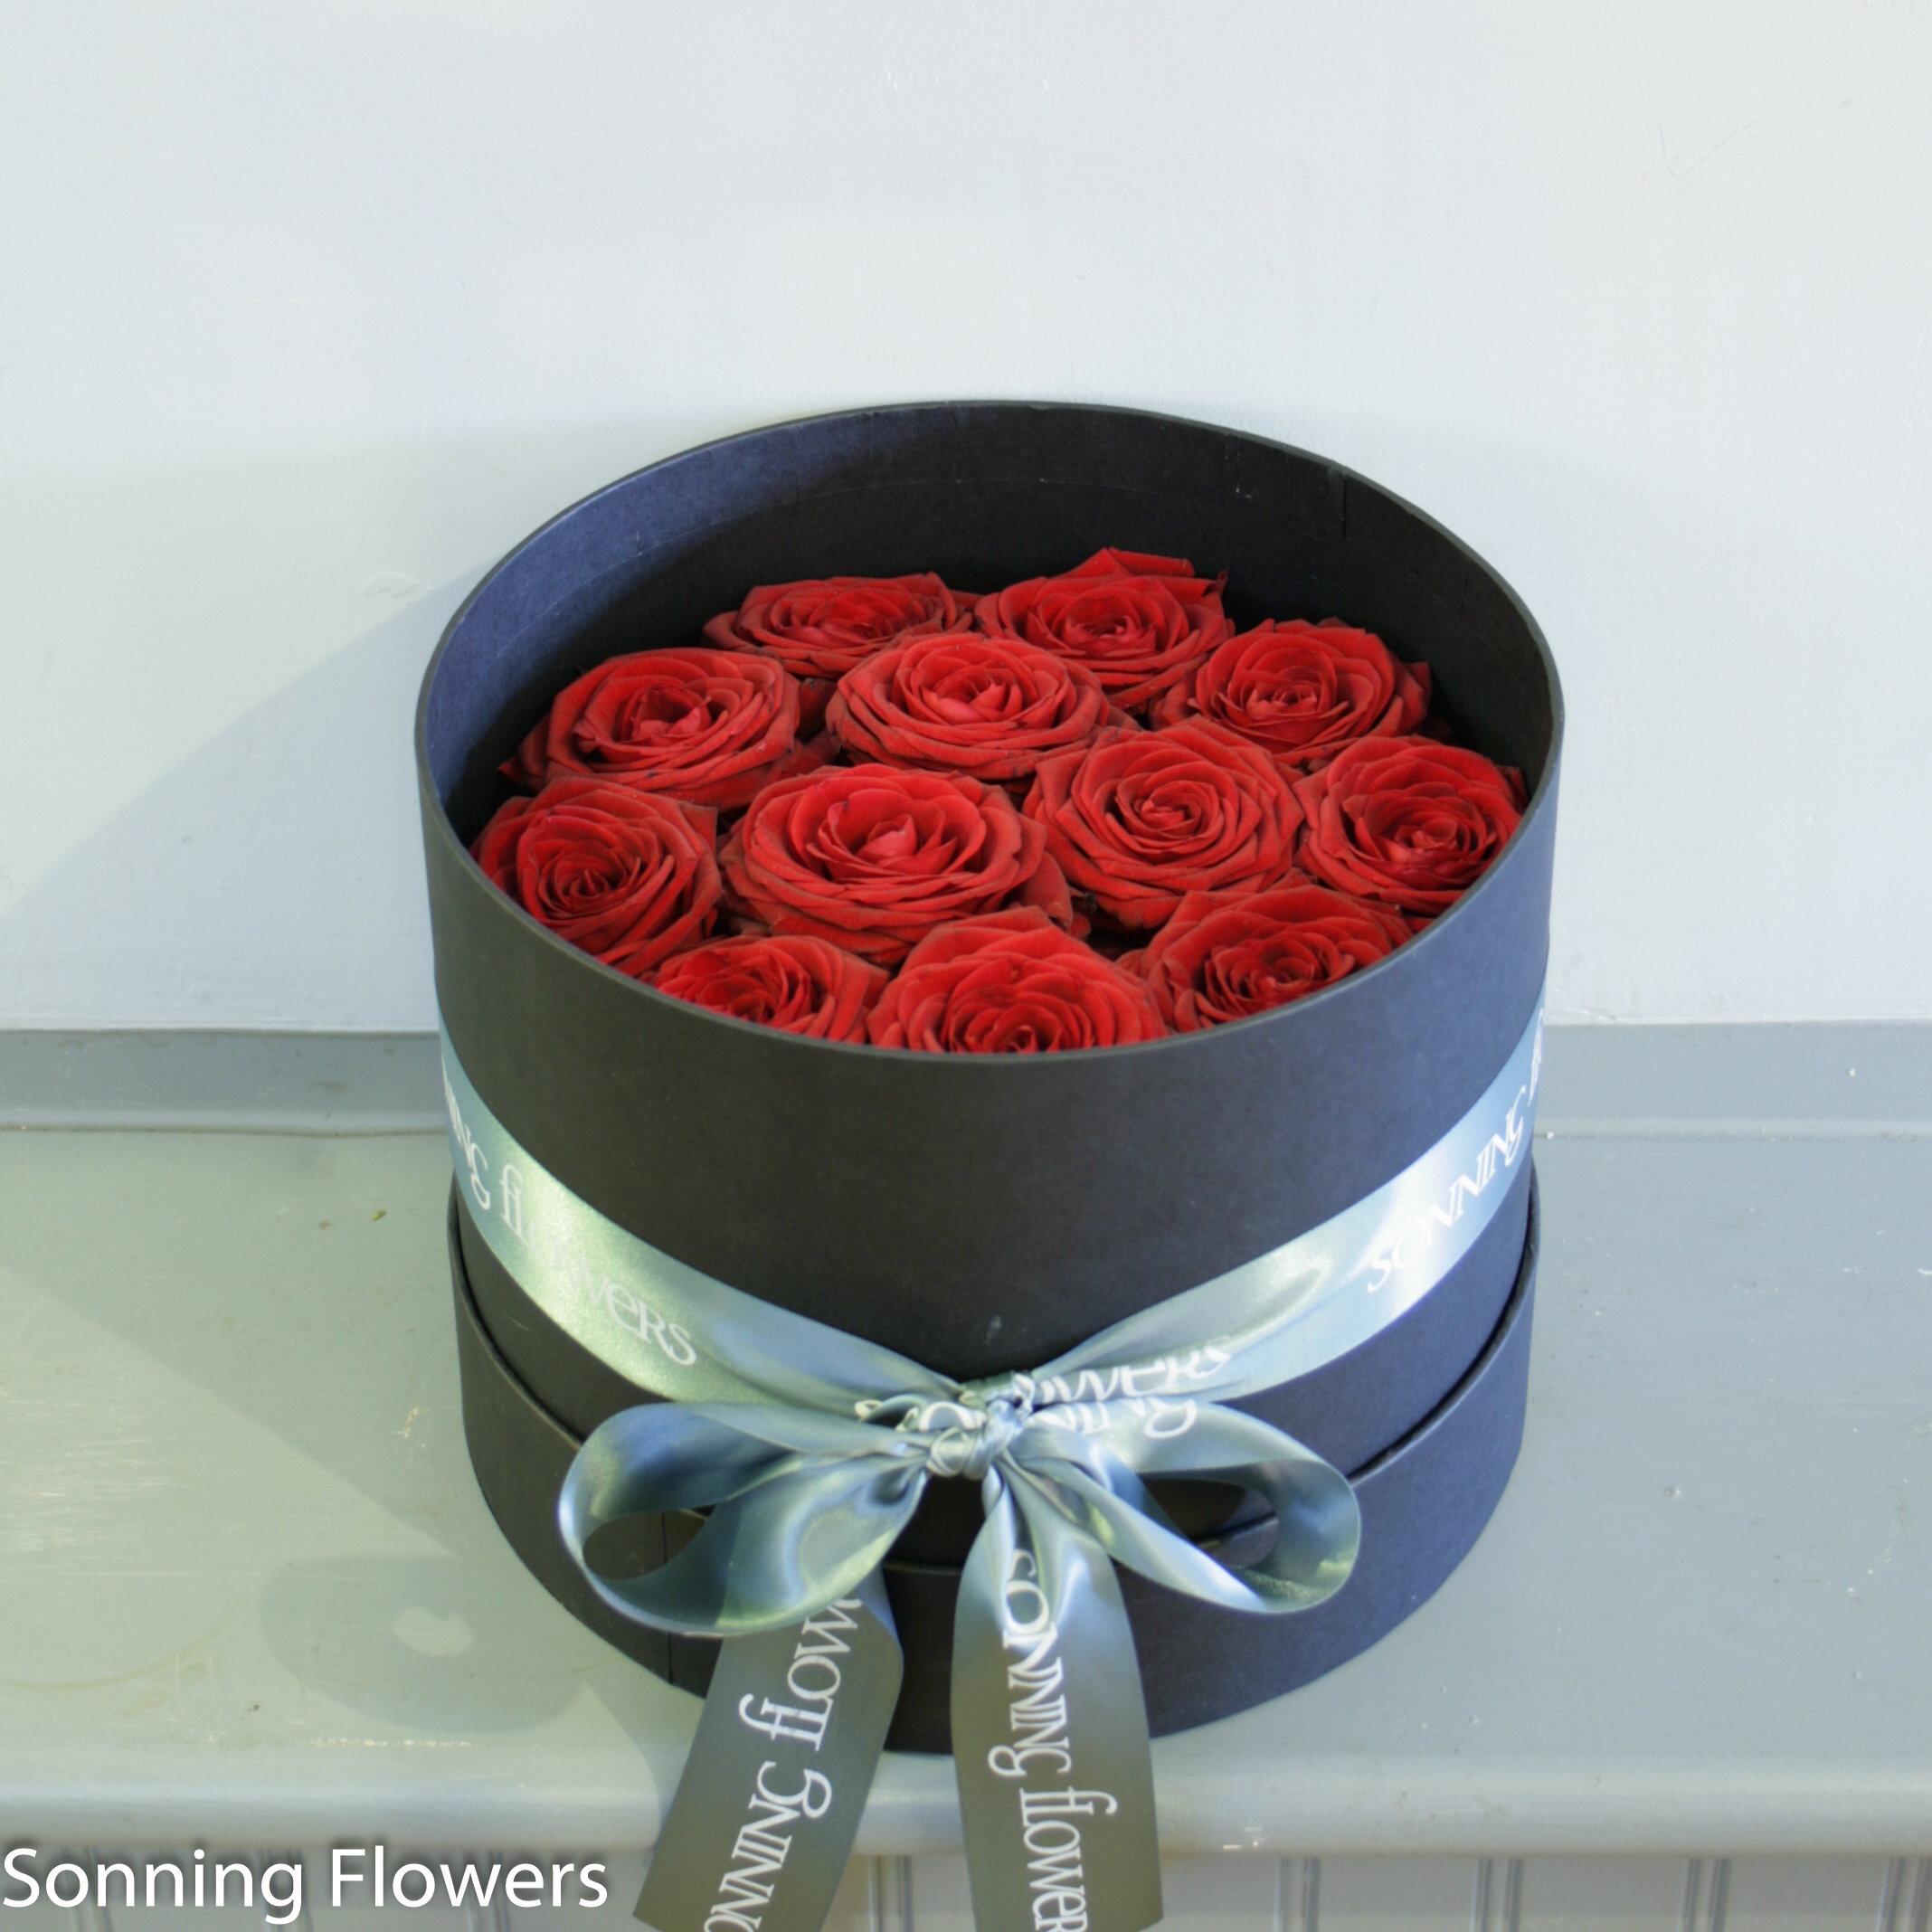 Valentines Bouquet - 12 red roses in a hat box - Sonning Flowers